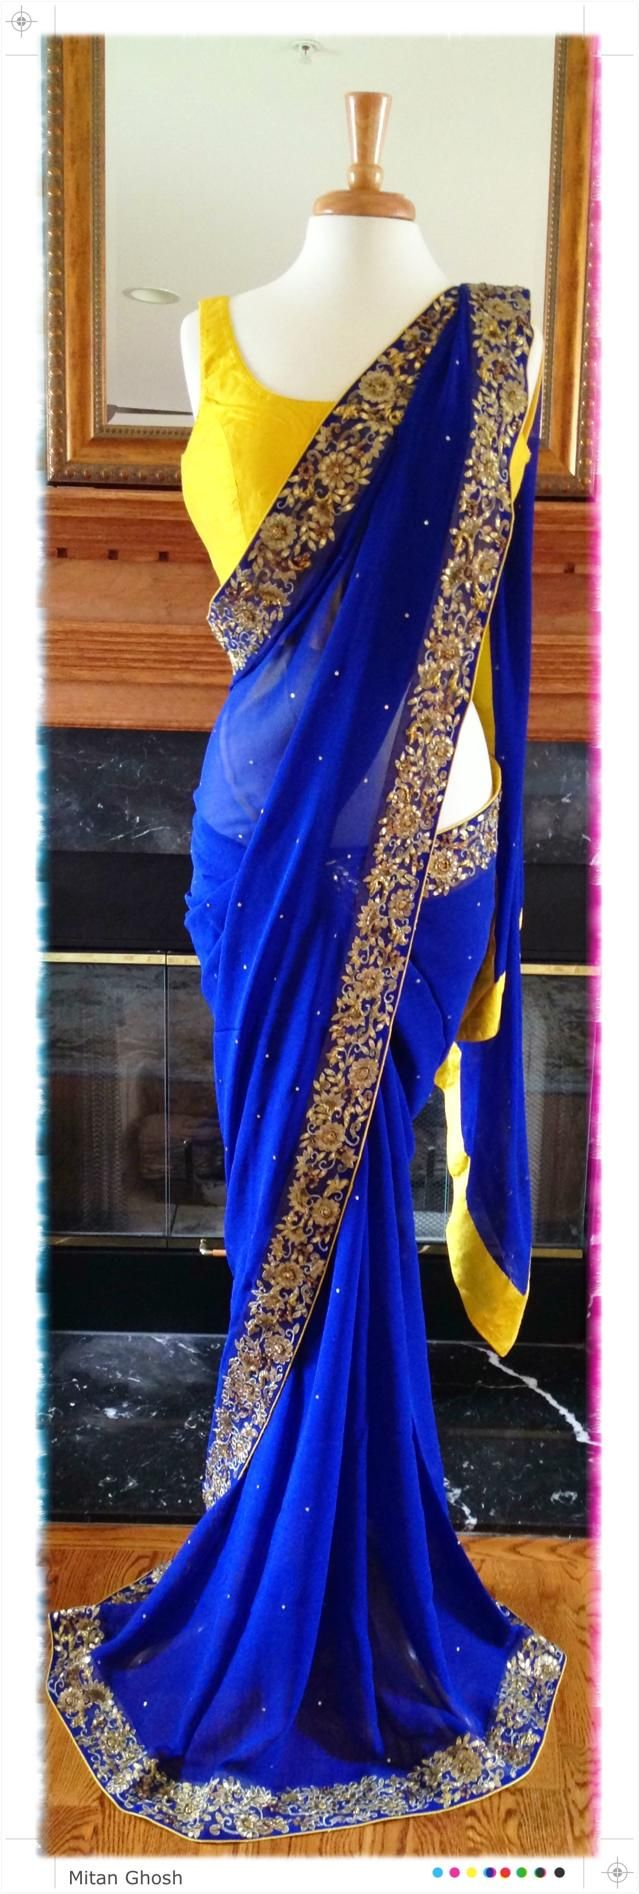 Gota patti with dabka work on a georgette saree by http://www.MitanGhosh.com/ ~ http://pinterest.com/mitanghosh/pins/ New Jersey